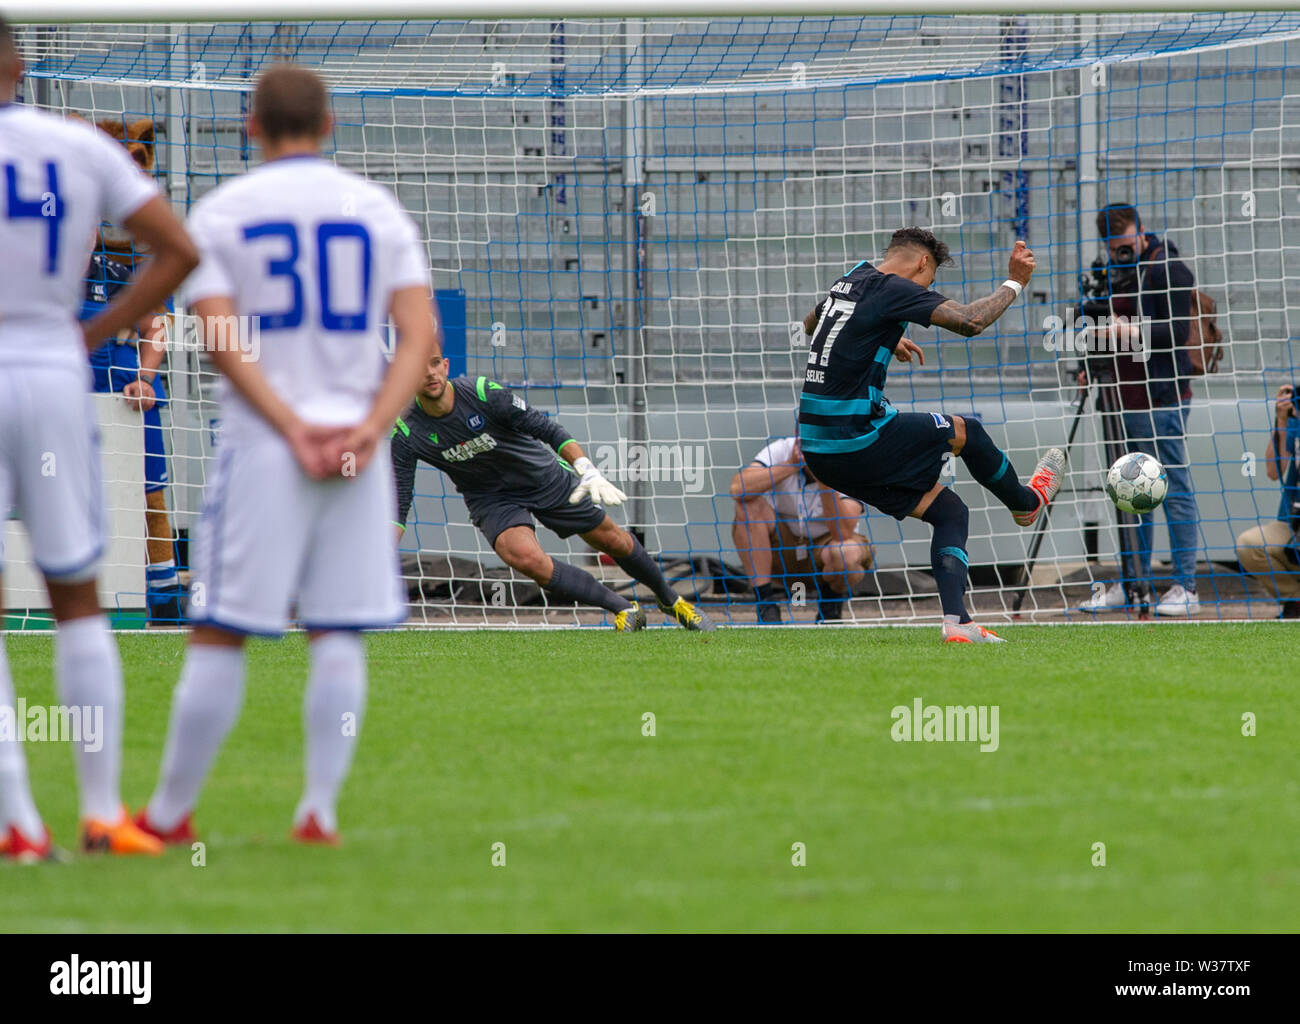 Karlsruhe, Deutschland. 13th July, 2019. Penalties: Goalkeeper Marius Gersbeck (KSC) versus Davie Selke (Hertha BSC). Hertha GES/Football/KSC Blitz Tournament wins: Karlsruhe SC - Hertha BSC Berlin, 13.07.2019 Football/Soccer: Karlsruhe vs. Hertha, Karlsruhe July.07.2019 | usage worldwide Credit: dpa/Alamy Live News - Stock Image